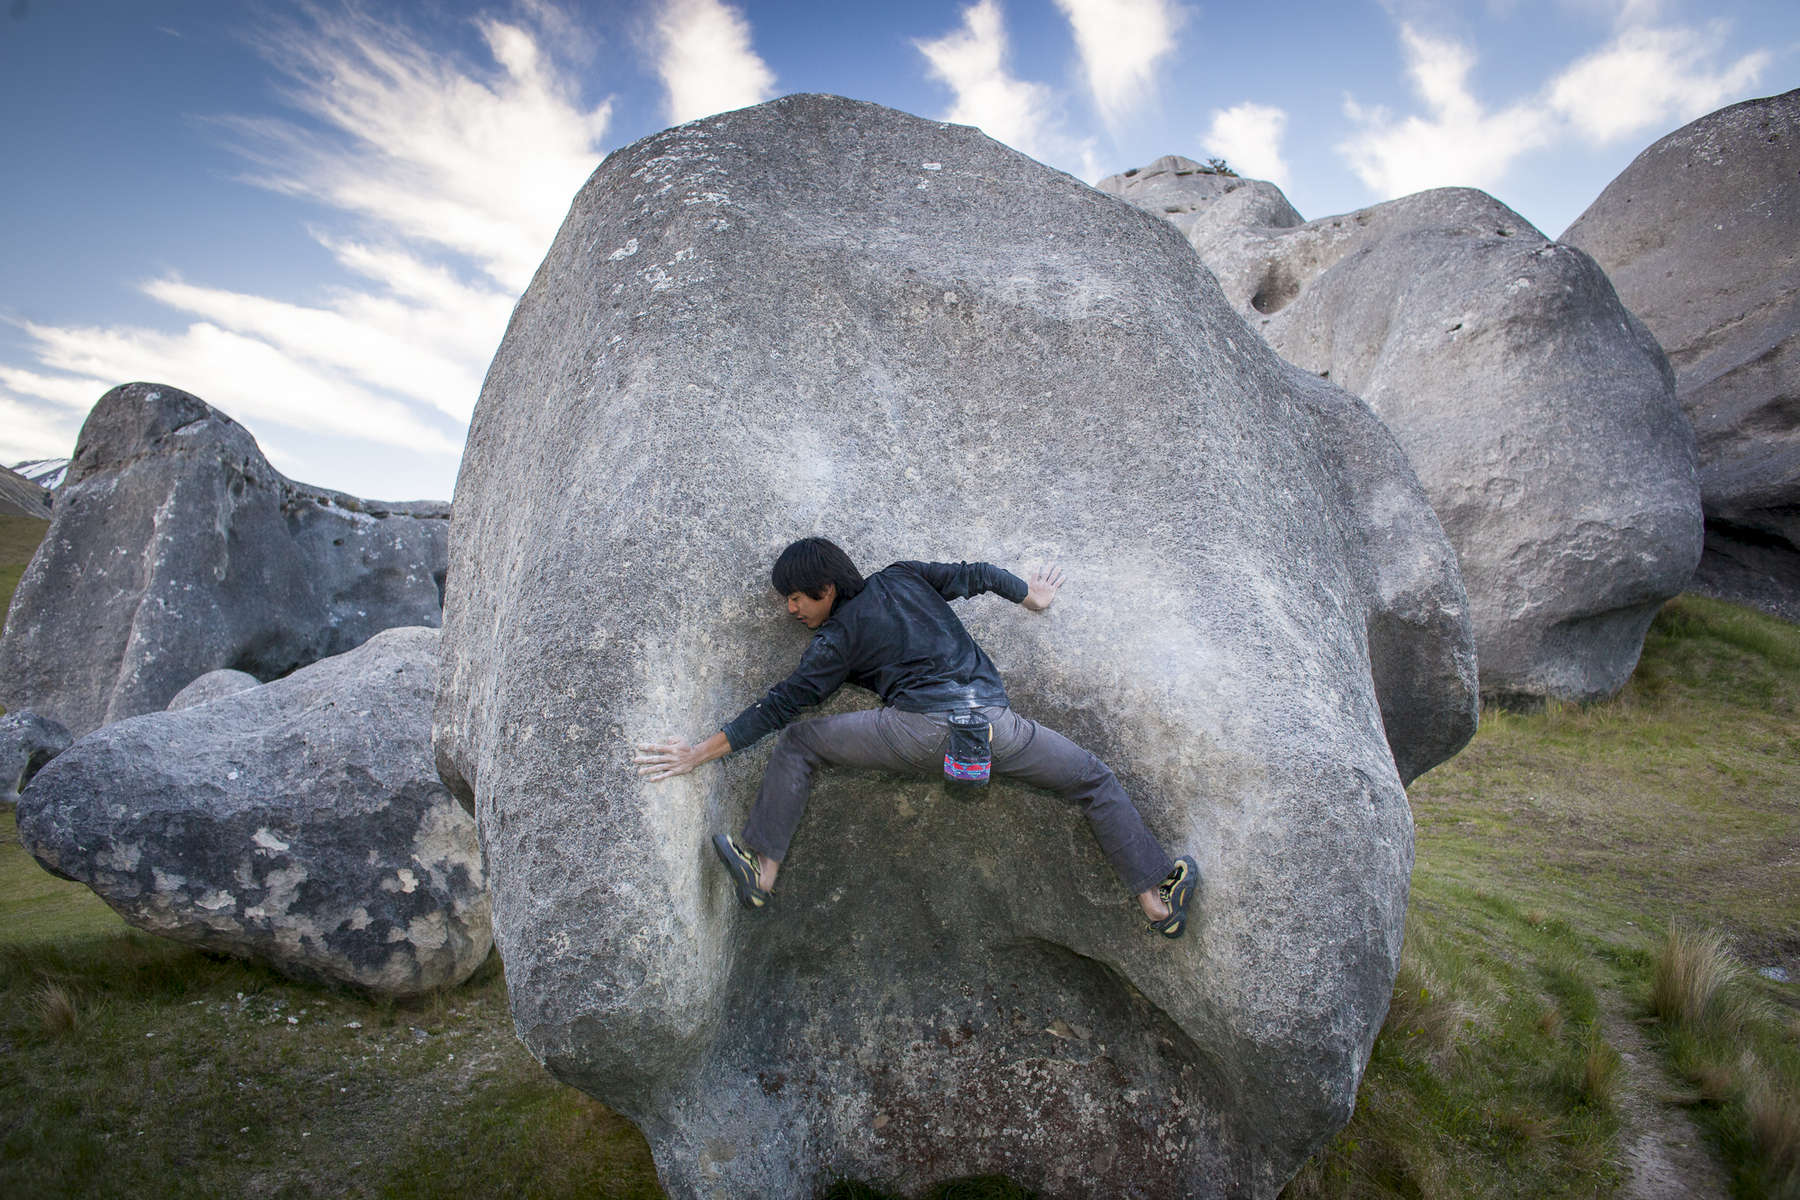 Woman hiker on rocks at Arthurs Pass, New Zealand, a destination rock climing and bouldering spot. by Vermont photographer Judd Lamphere